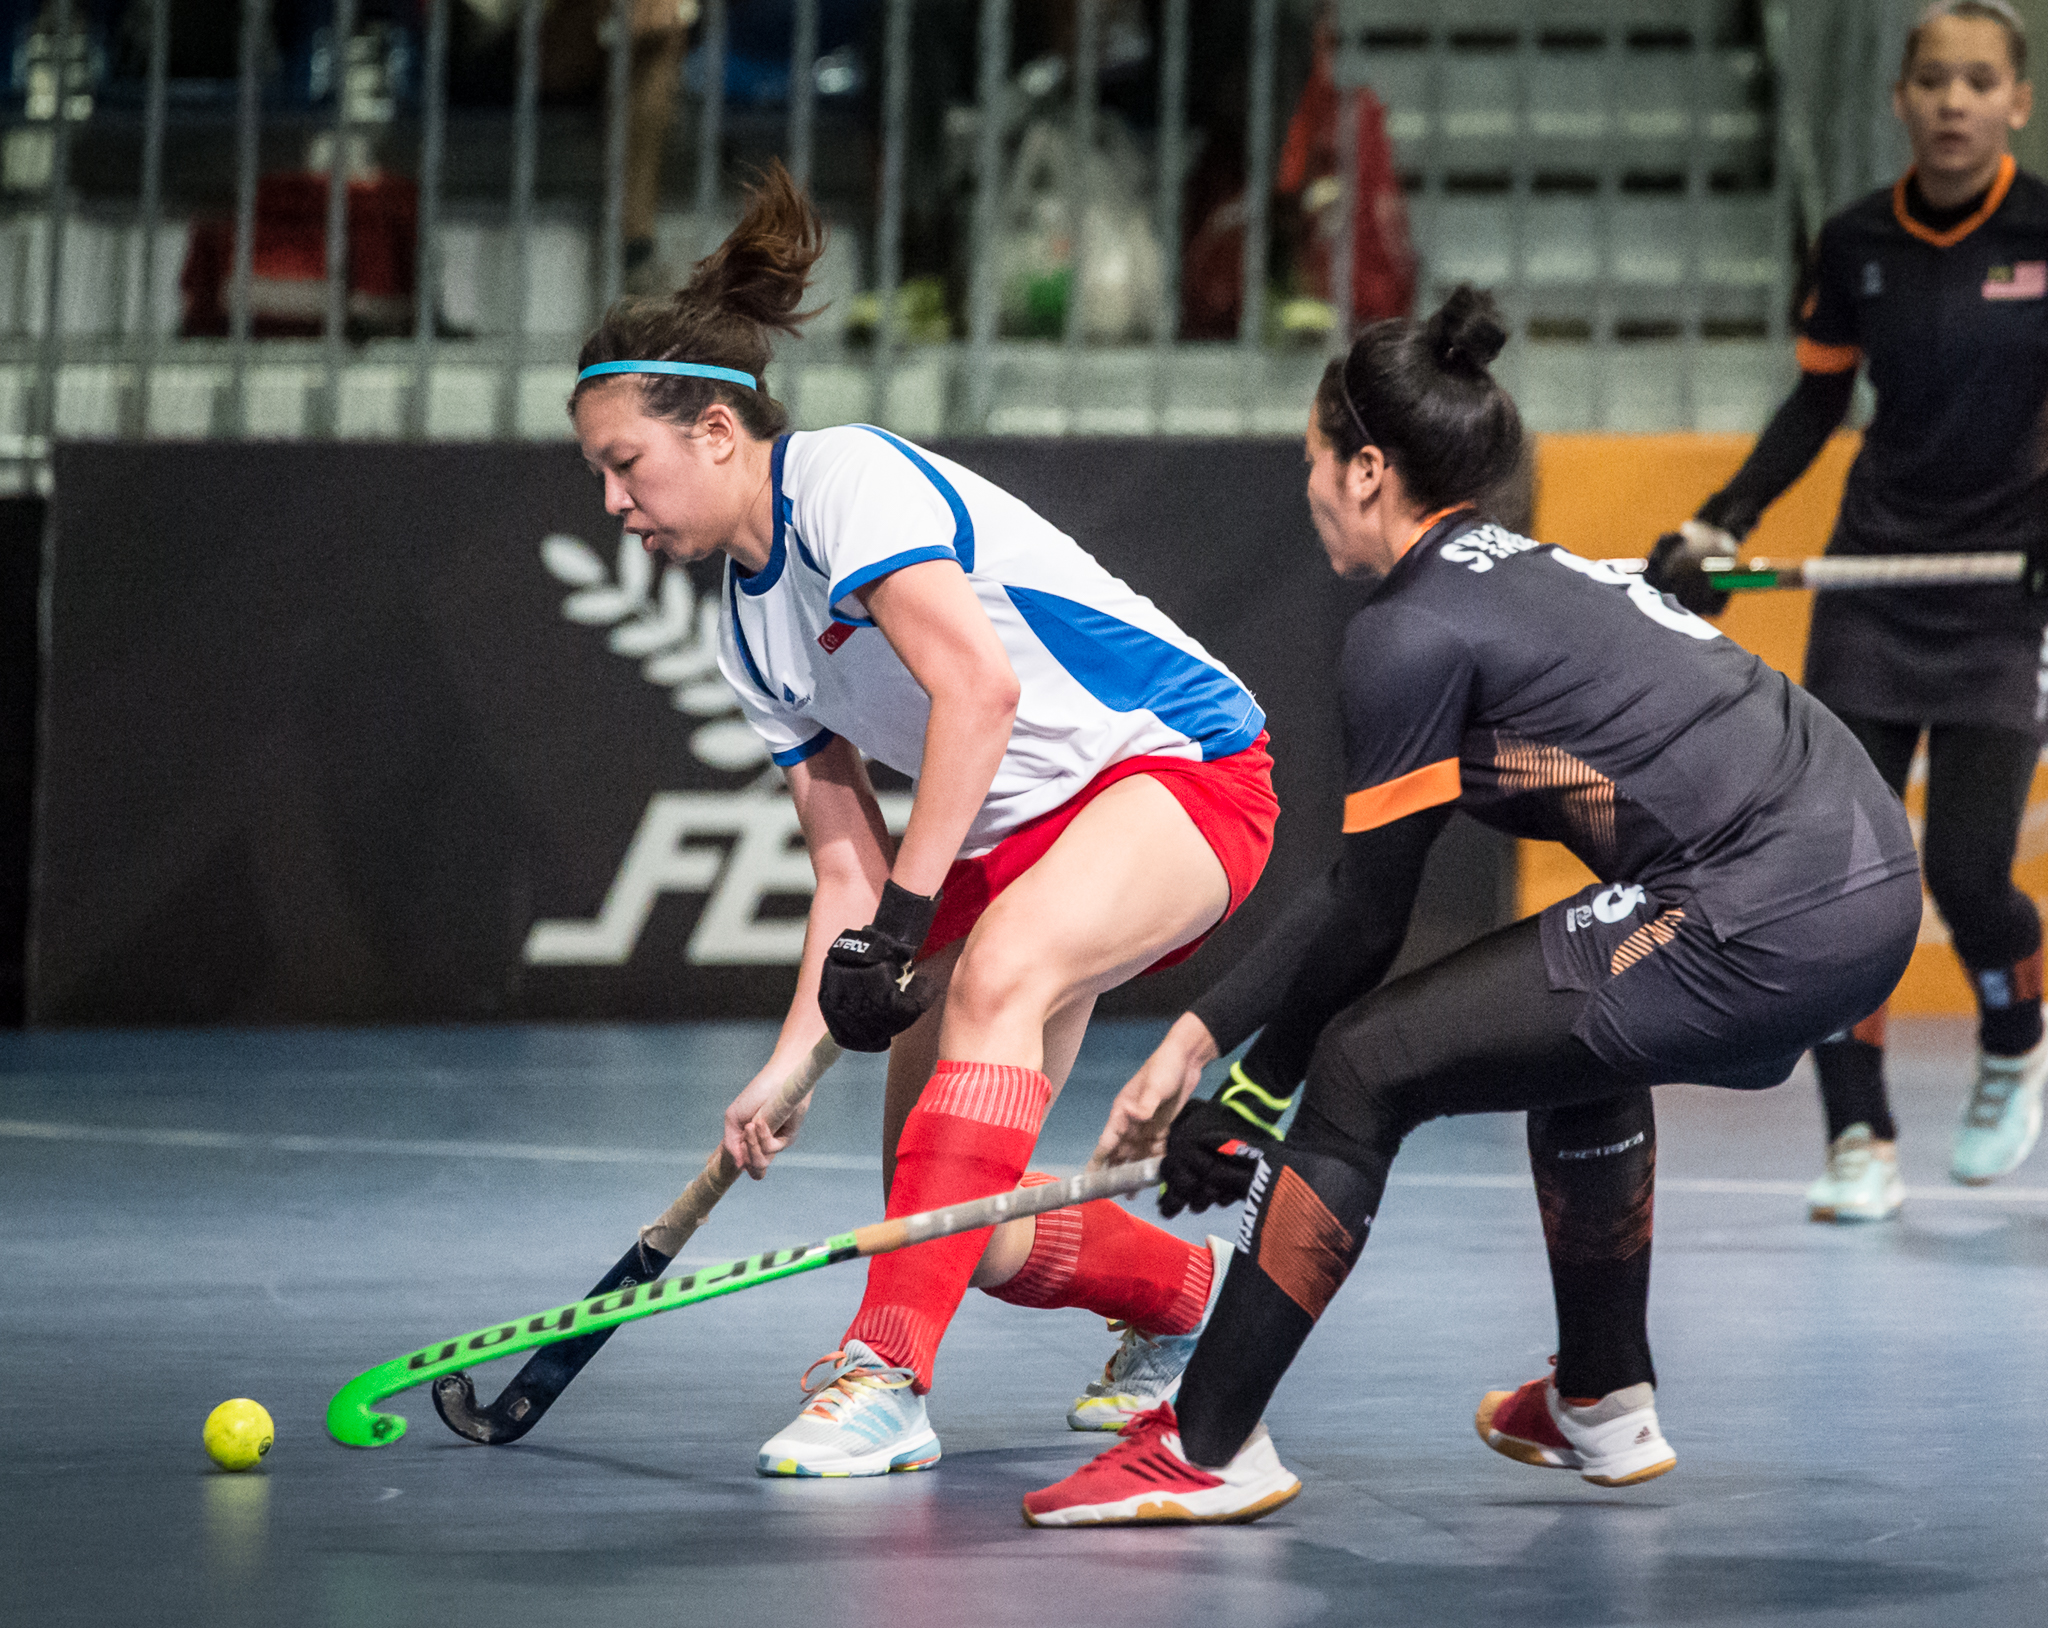 A Singaporean hockey player attempts to dribble past a Malaysian opponent during the SEA Games at the Malaysian International Trade and Exhibition Centre.